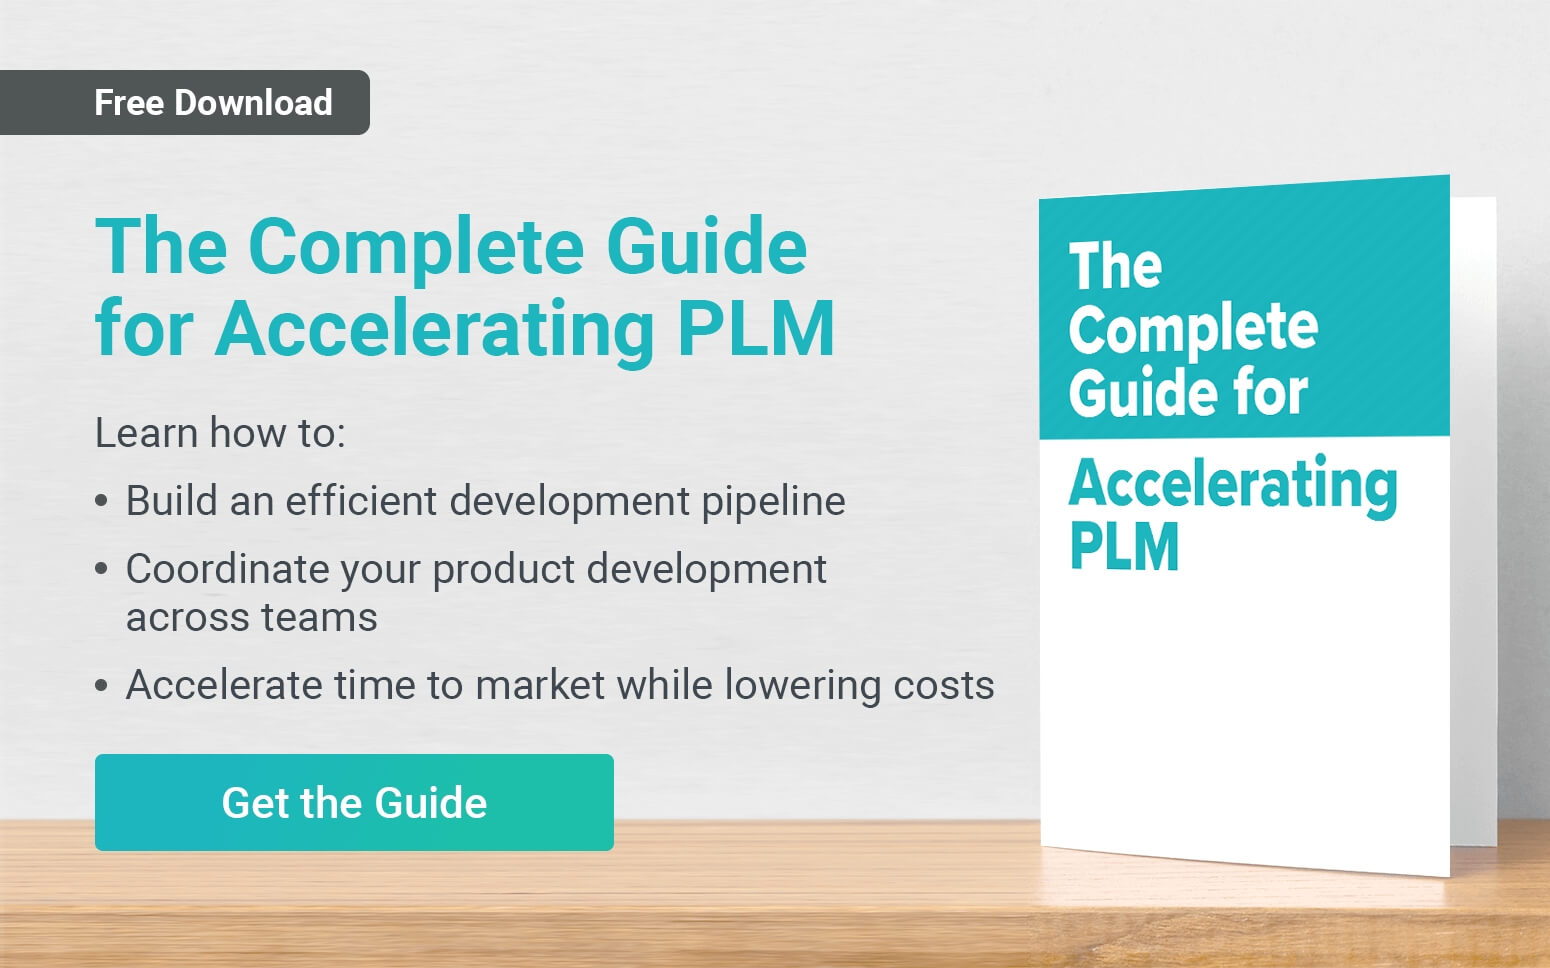 The Complete Guide for Accelerating PLM CTA